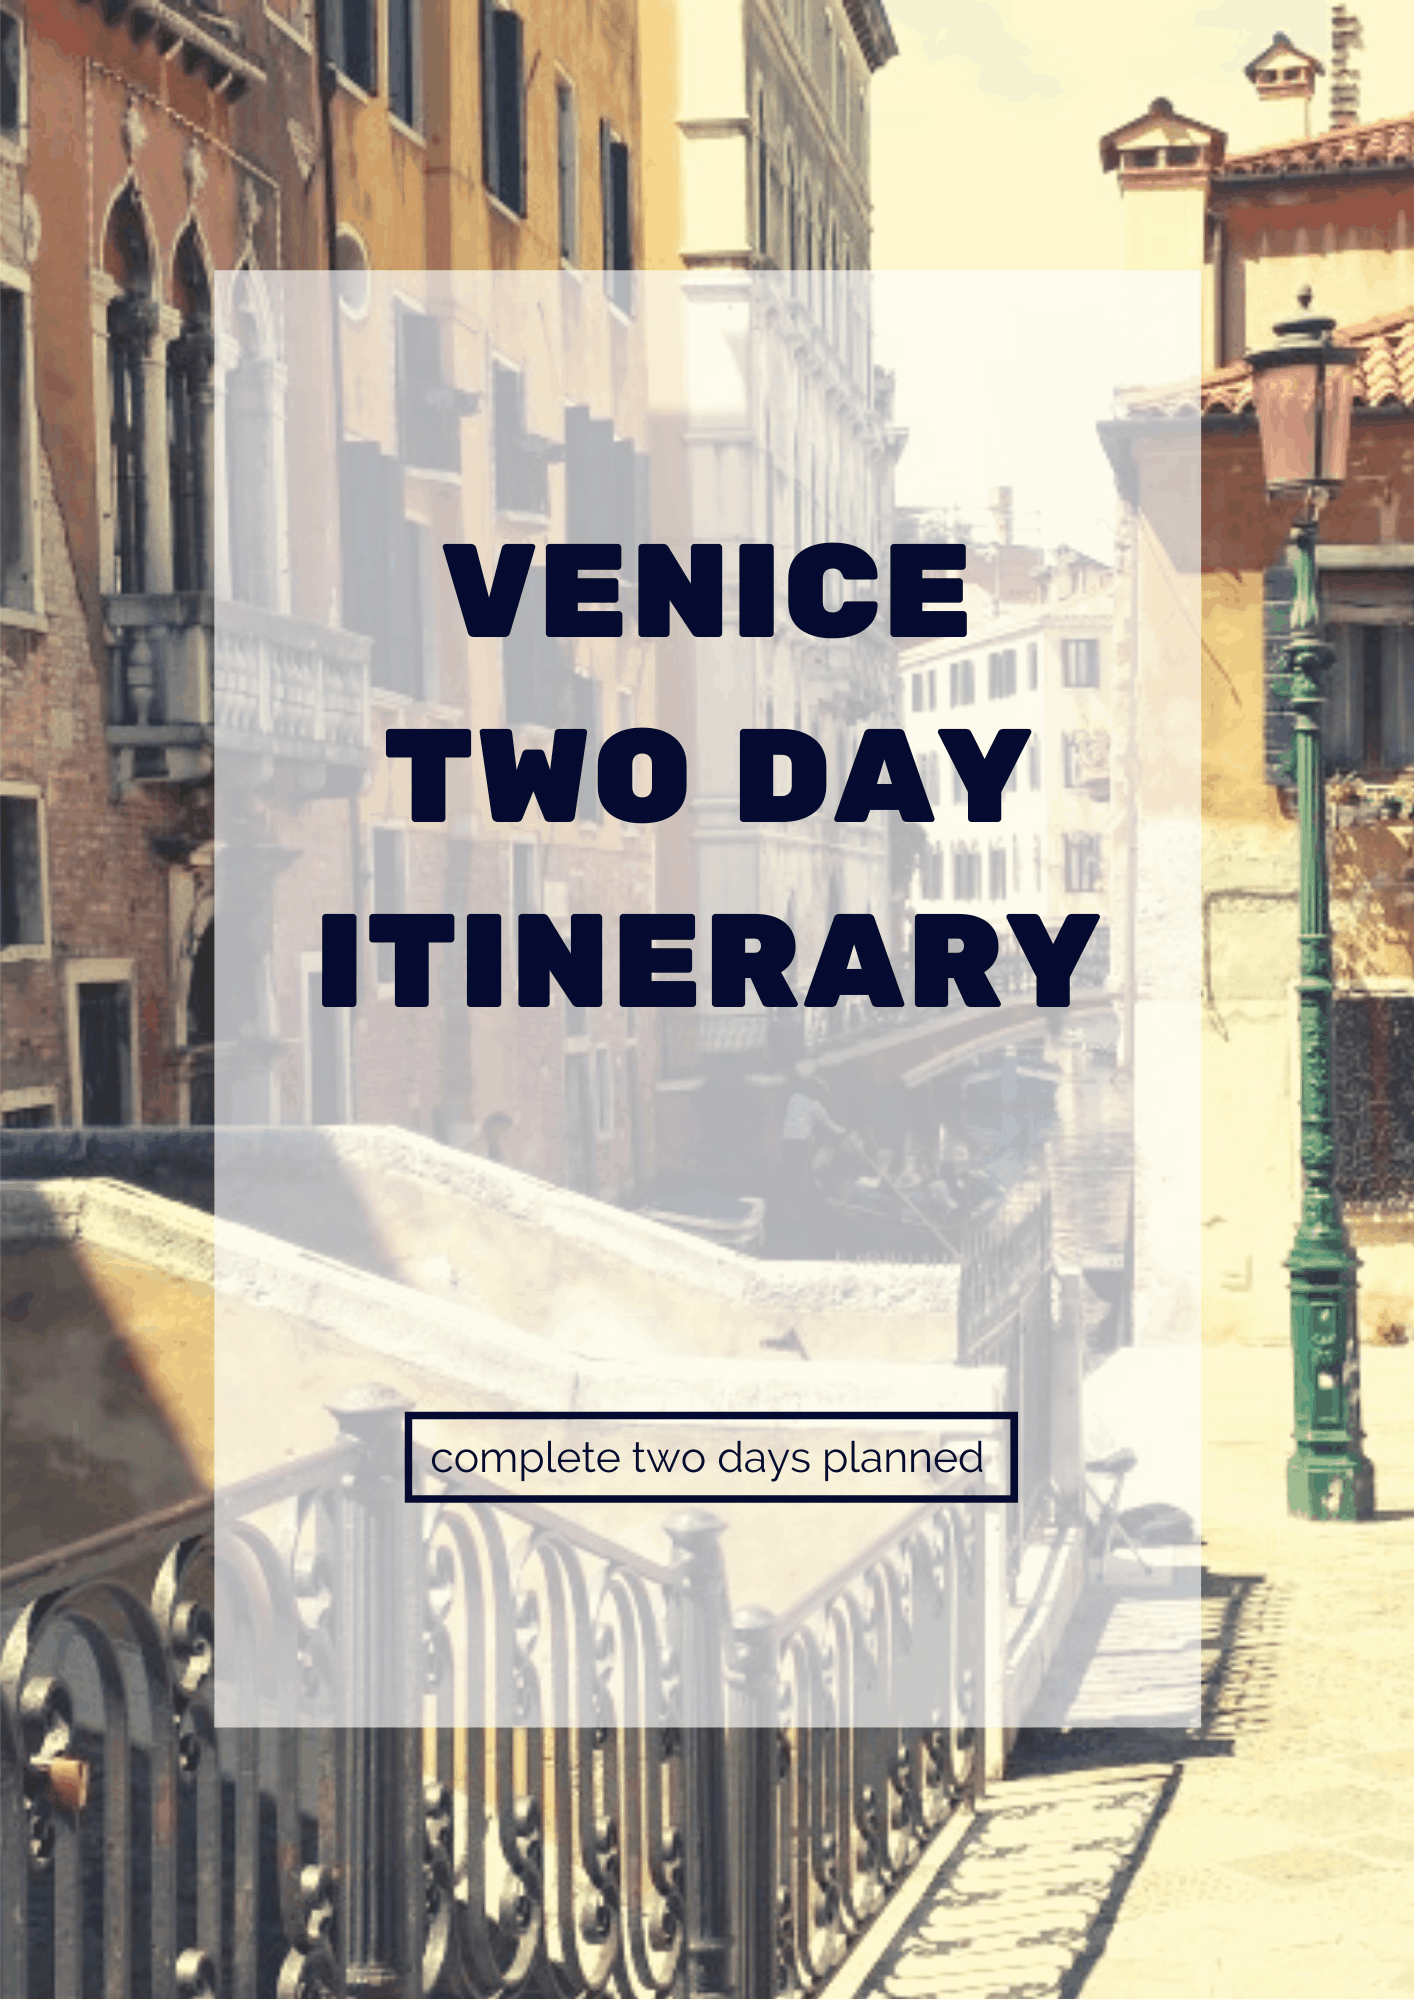 Venice Two Day Itinerary 2019